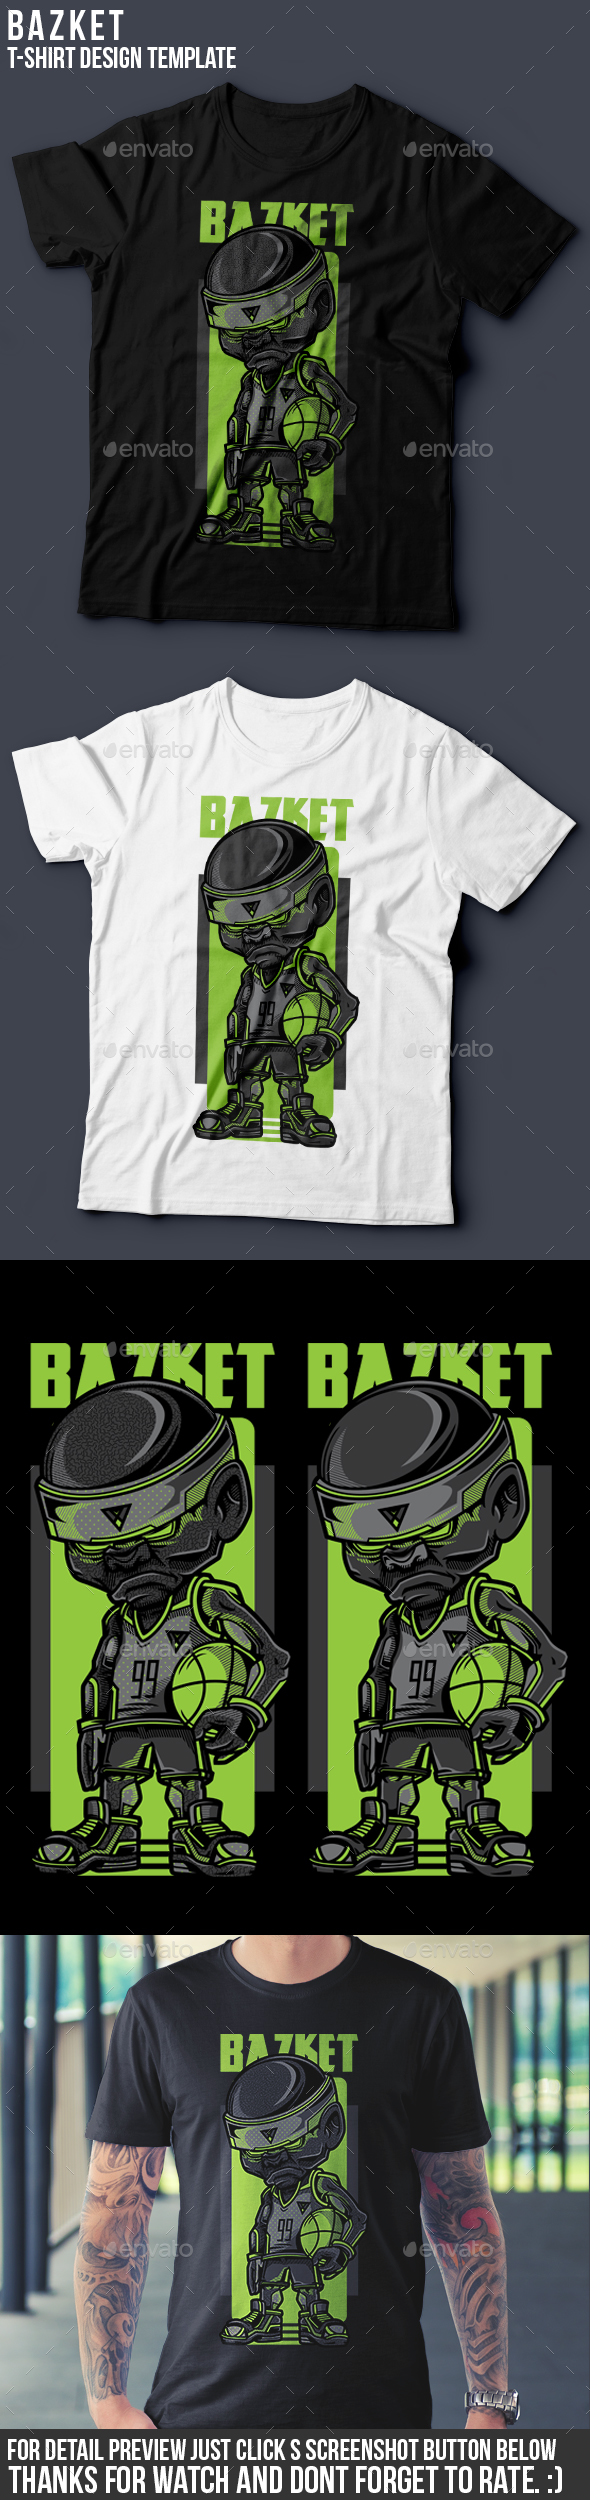 Bazket T-Shirt Design - Sports & Teams T-Shirts